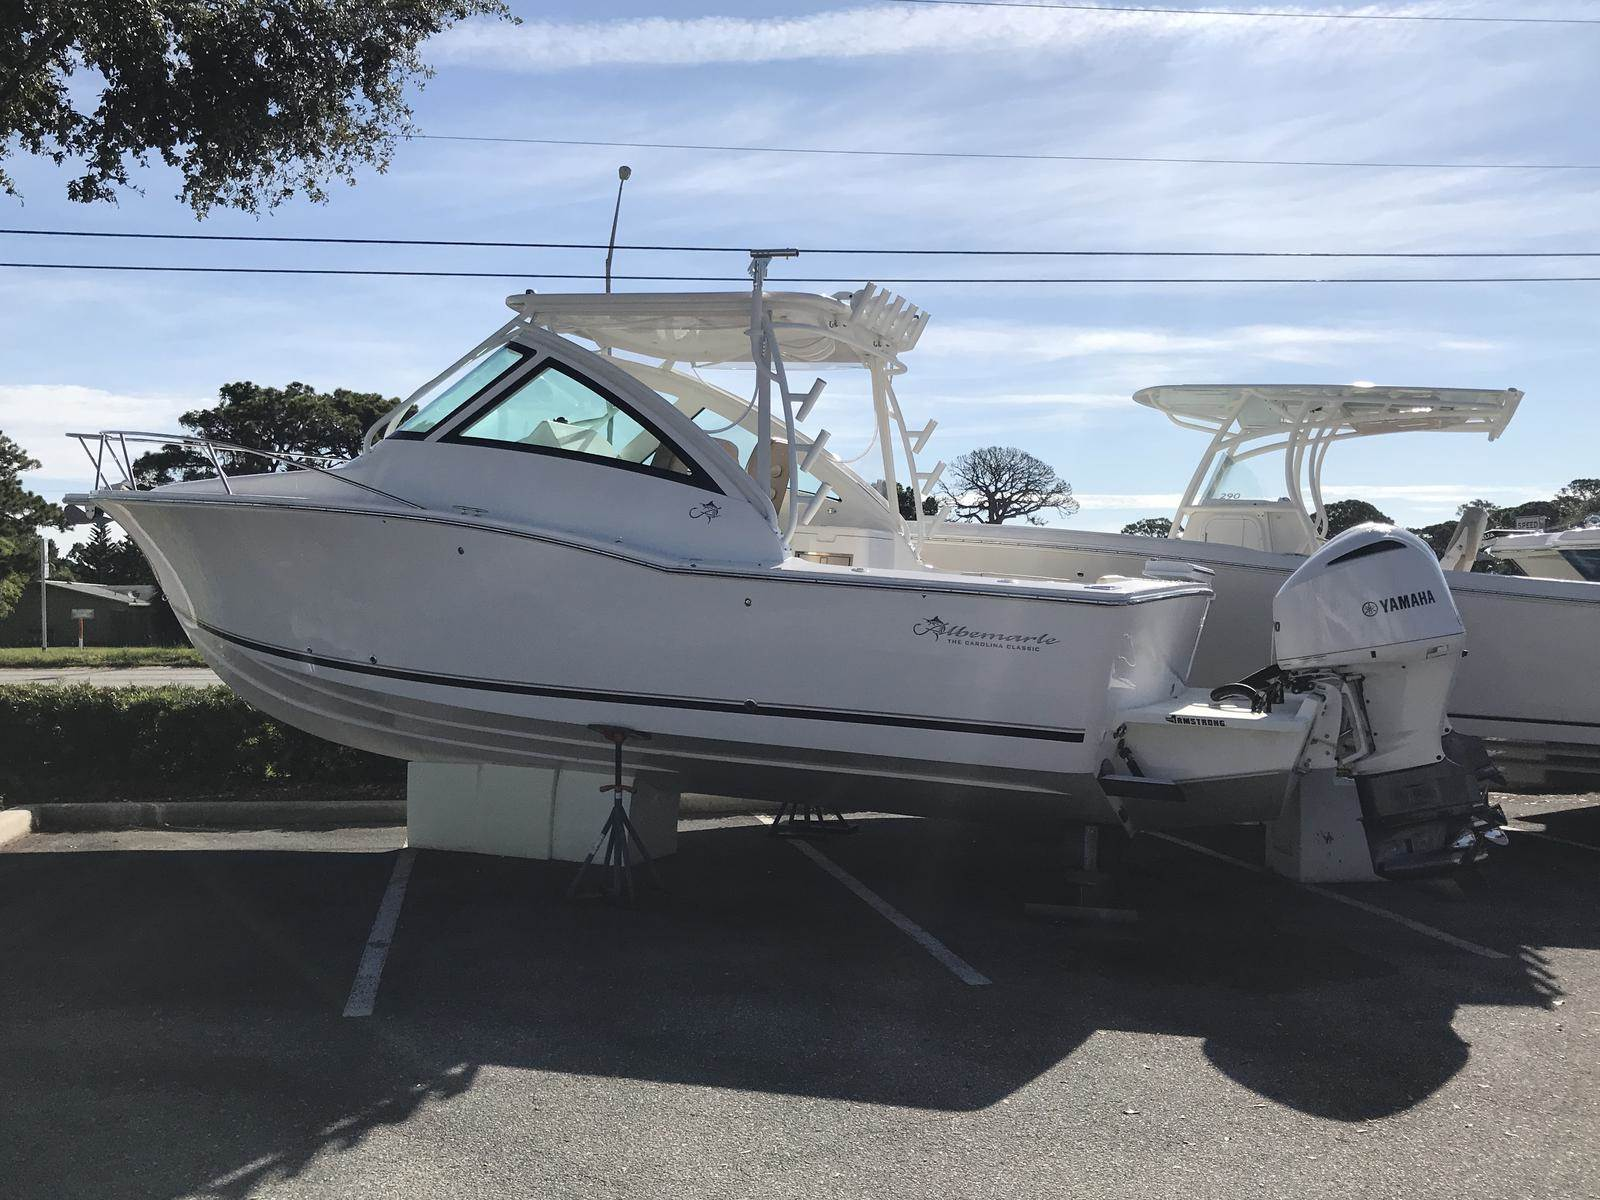 NEW 2018 Albemarle 29 Express - Sara Bay Marina